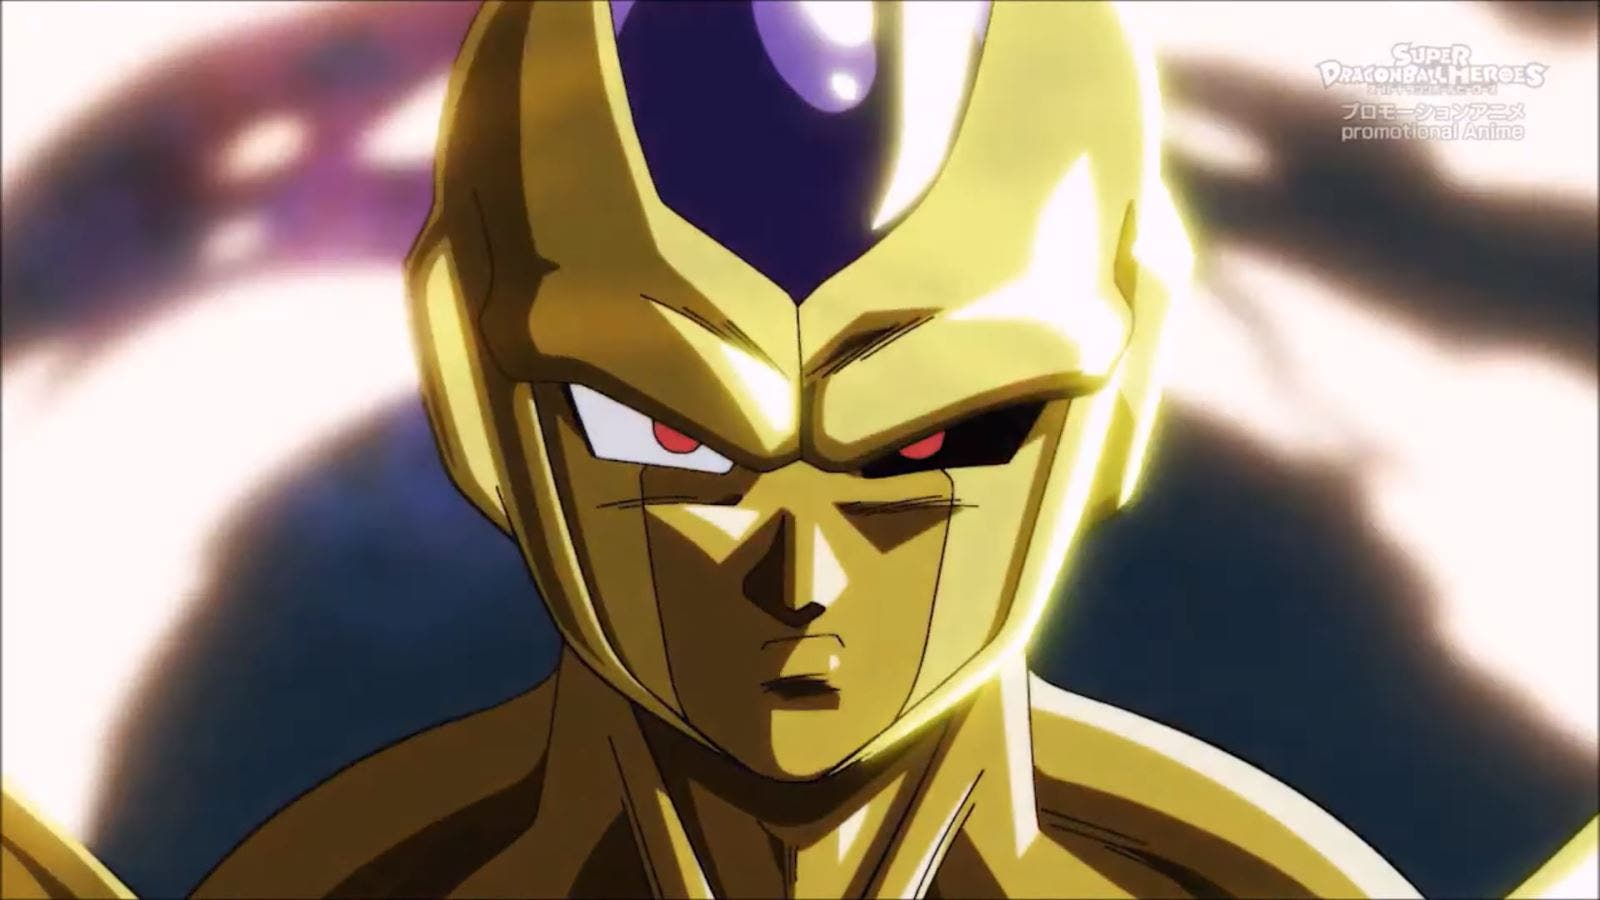 Critica De Dragon Ball Heroes Episodio 12 El Rock De Golden Metal